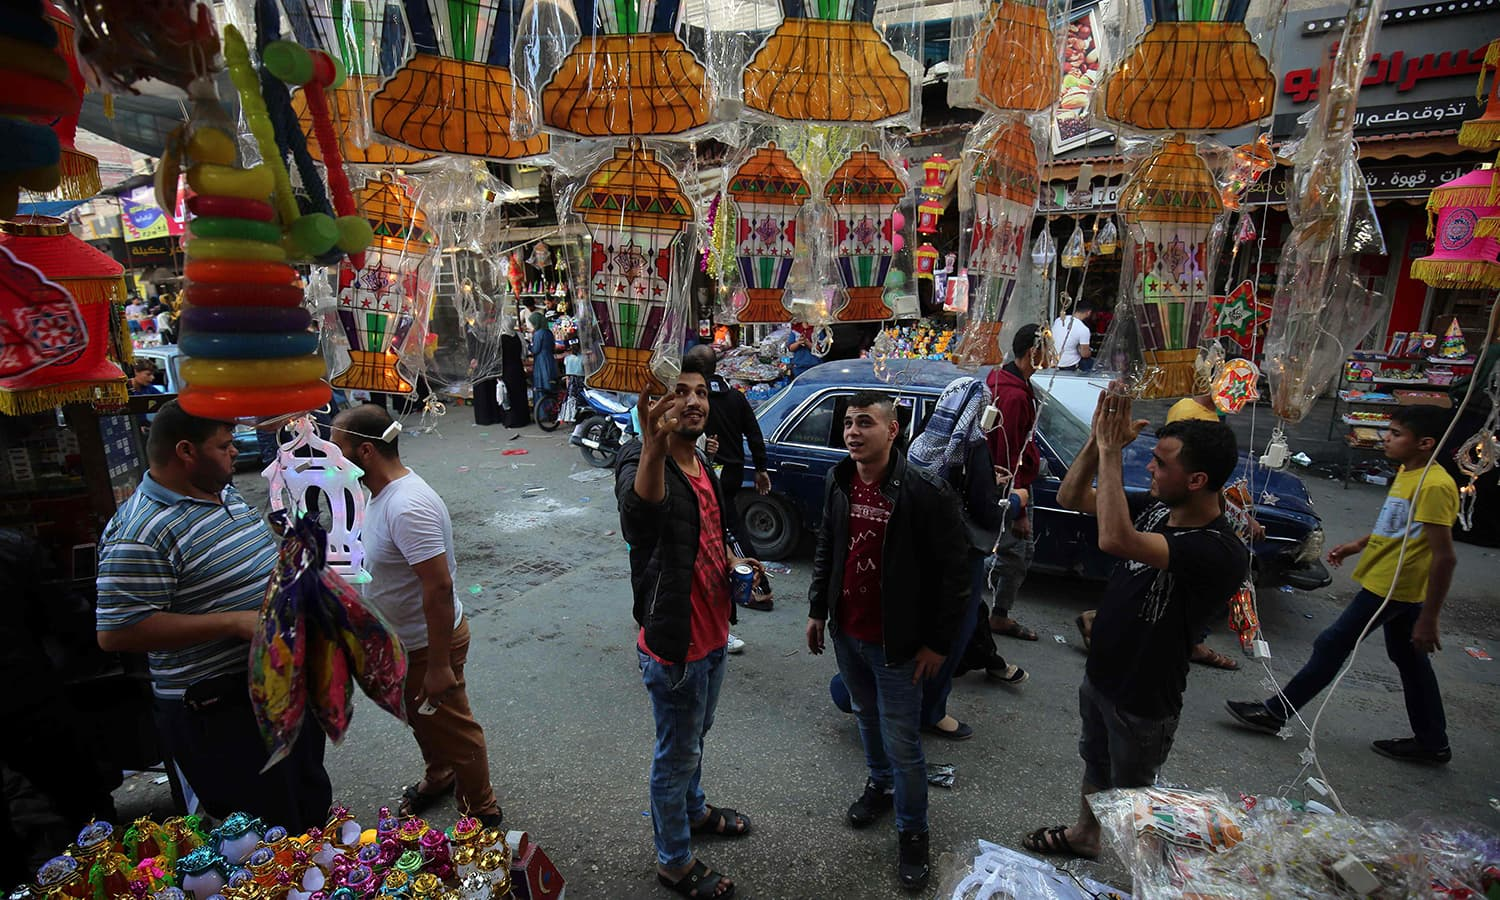 Palestinians shop at a market in Khan Yunis in the southern Gaza Strip. — AFP